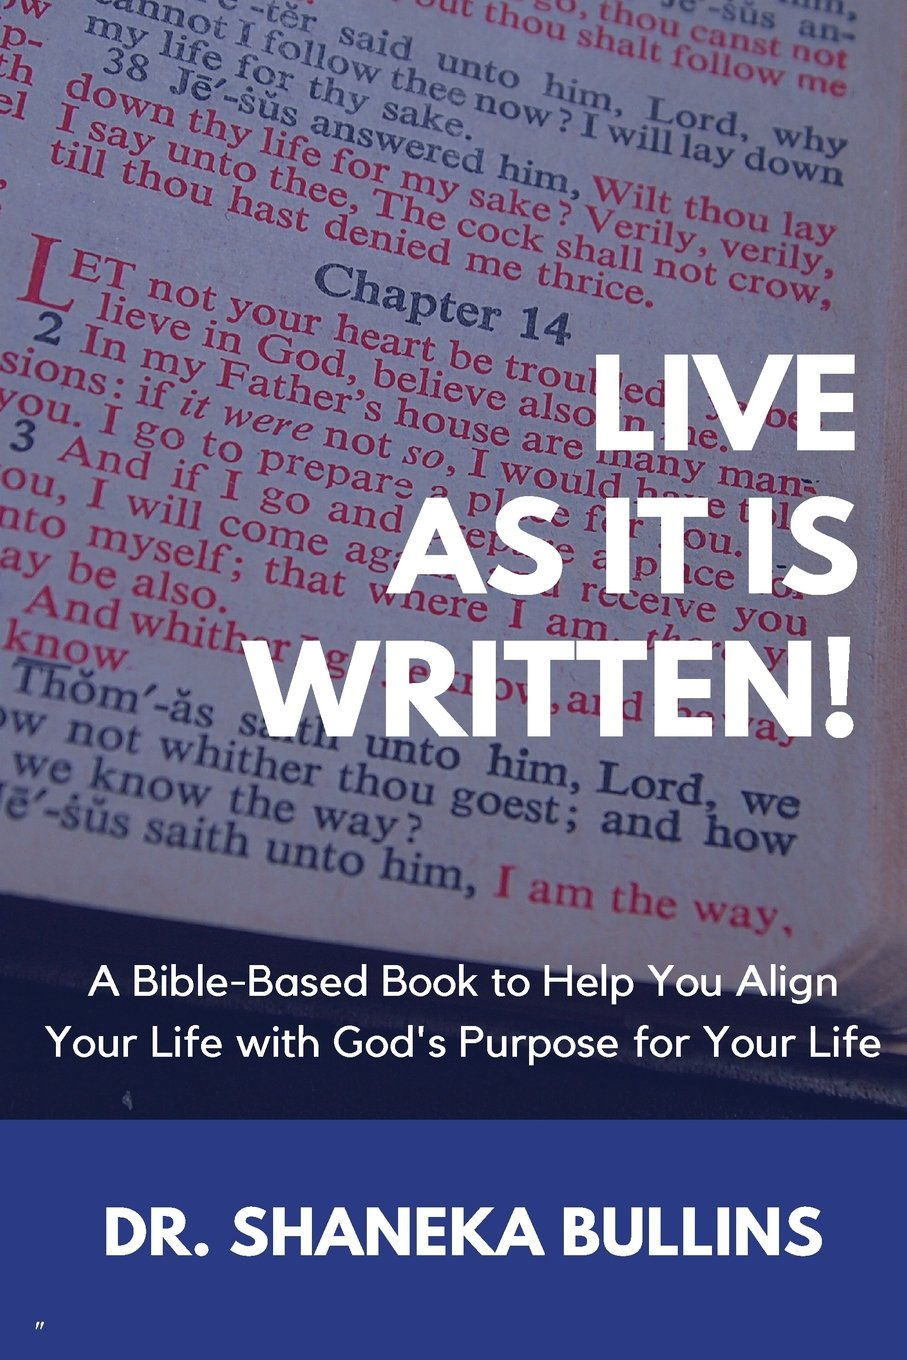 Live As It Is Written!: A Bible-Based Book to Help You Align Your Life with God's Purpose for Your Life pdf